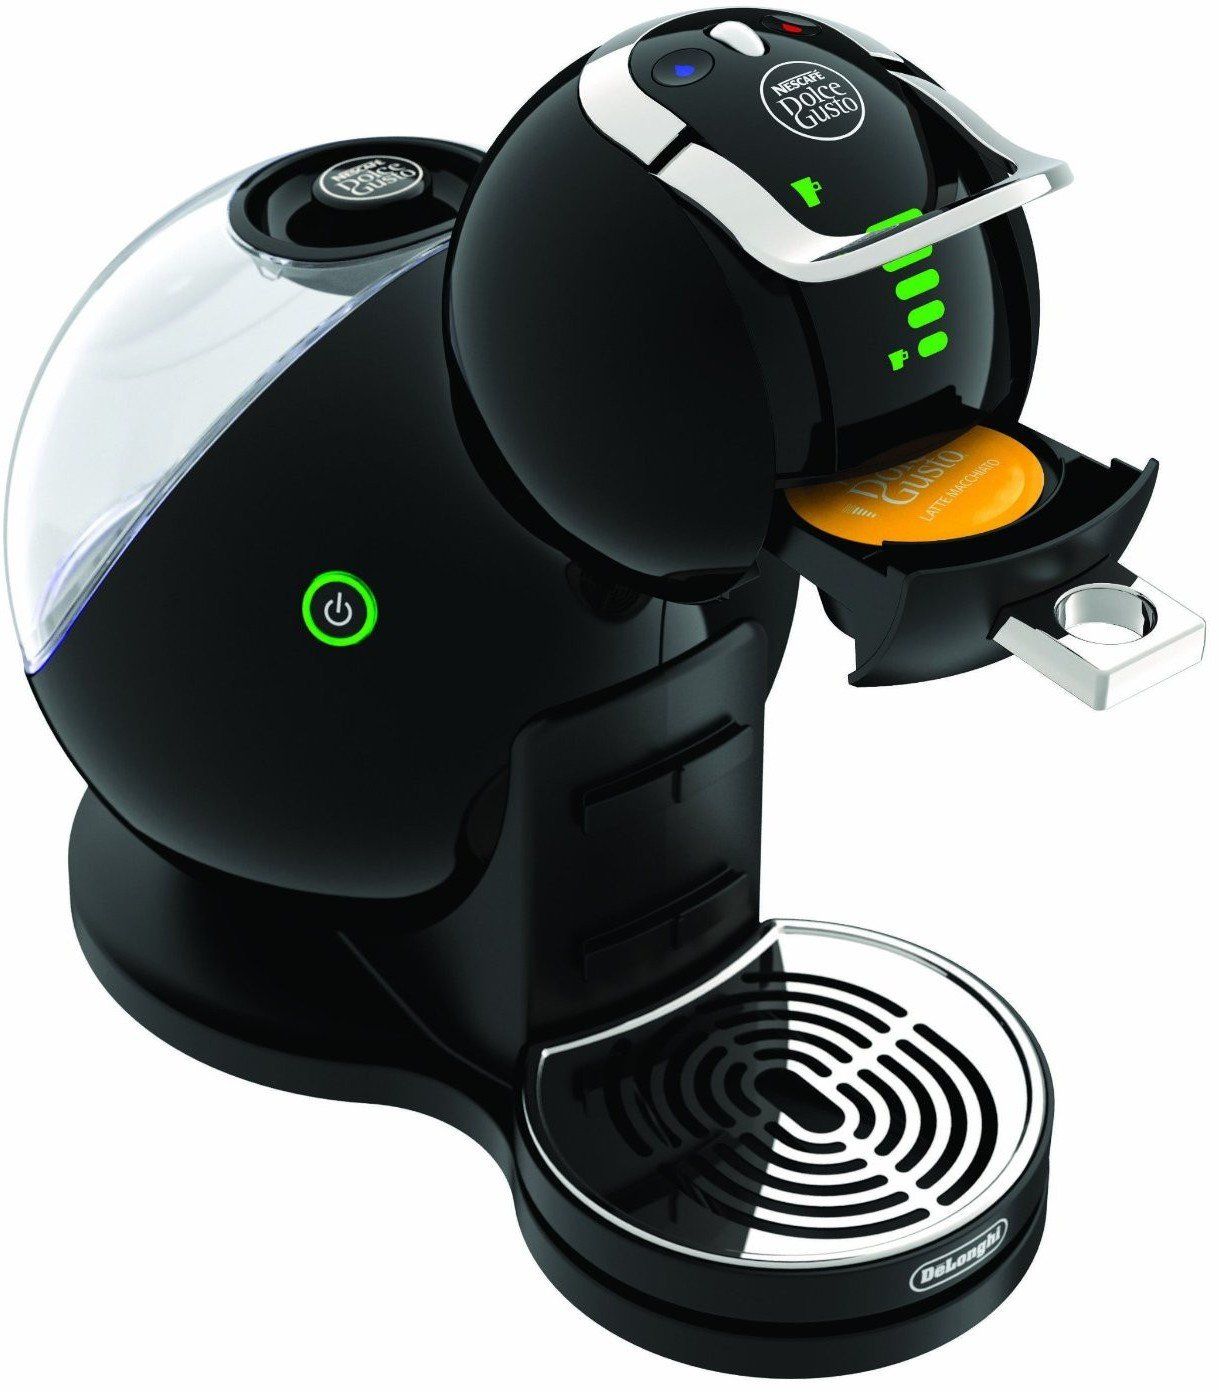 delonghi edg625 b dolce gusto melody iii automatic test. Black Bedroom Furniture Sets. Home Design Ideas